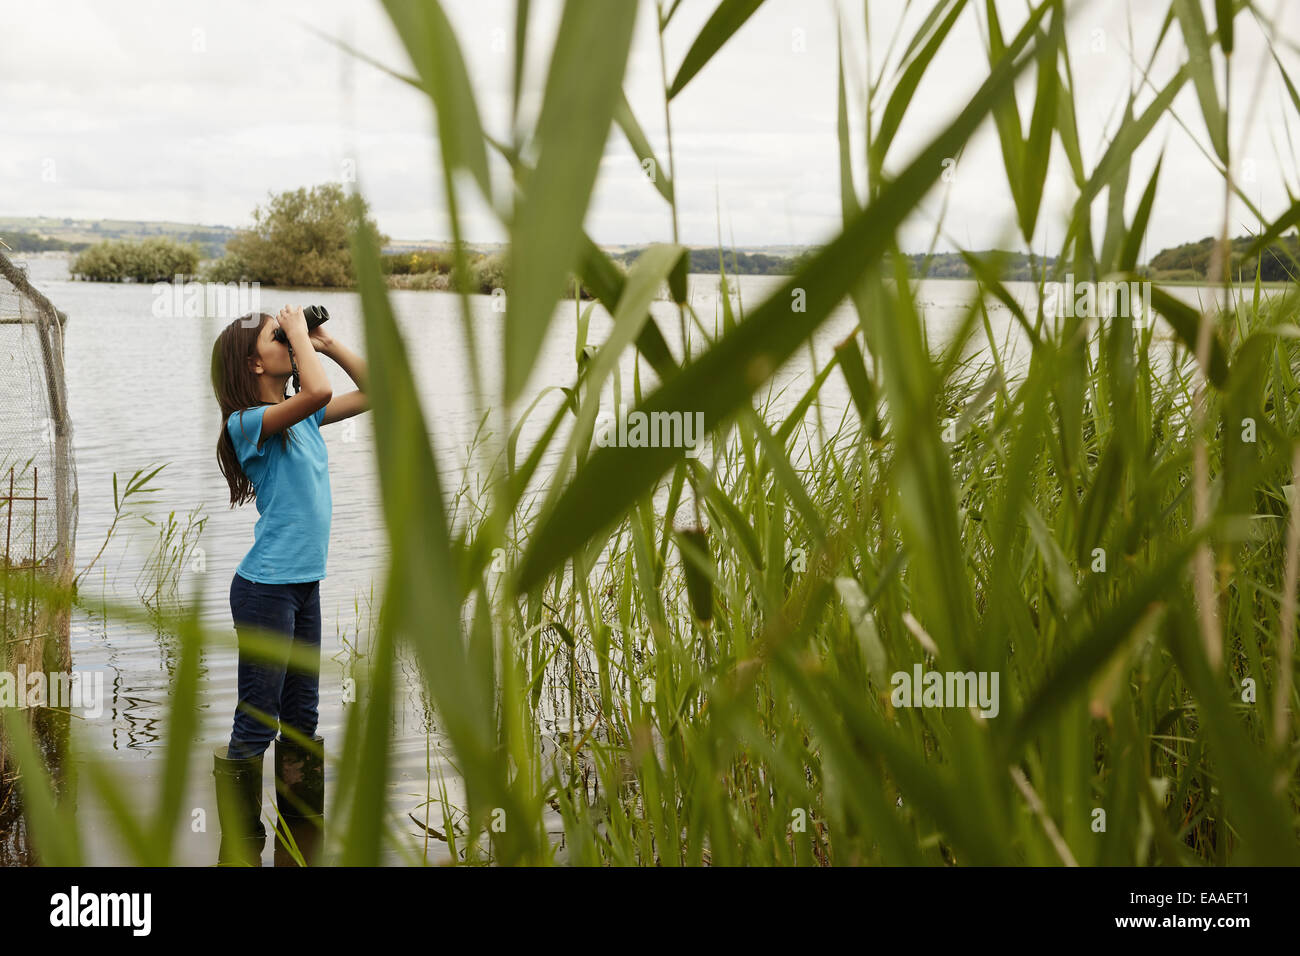 A young girl, a birdwatcher with binoculars. - Stock Image